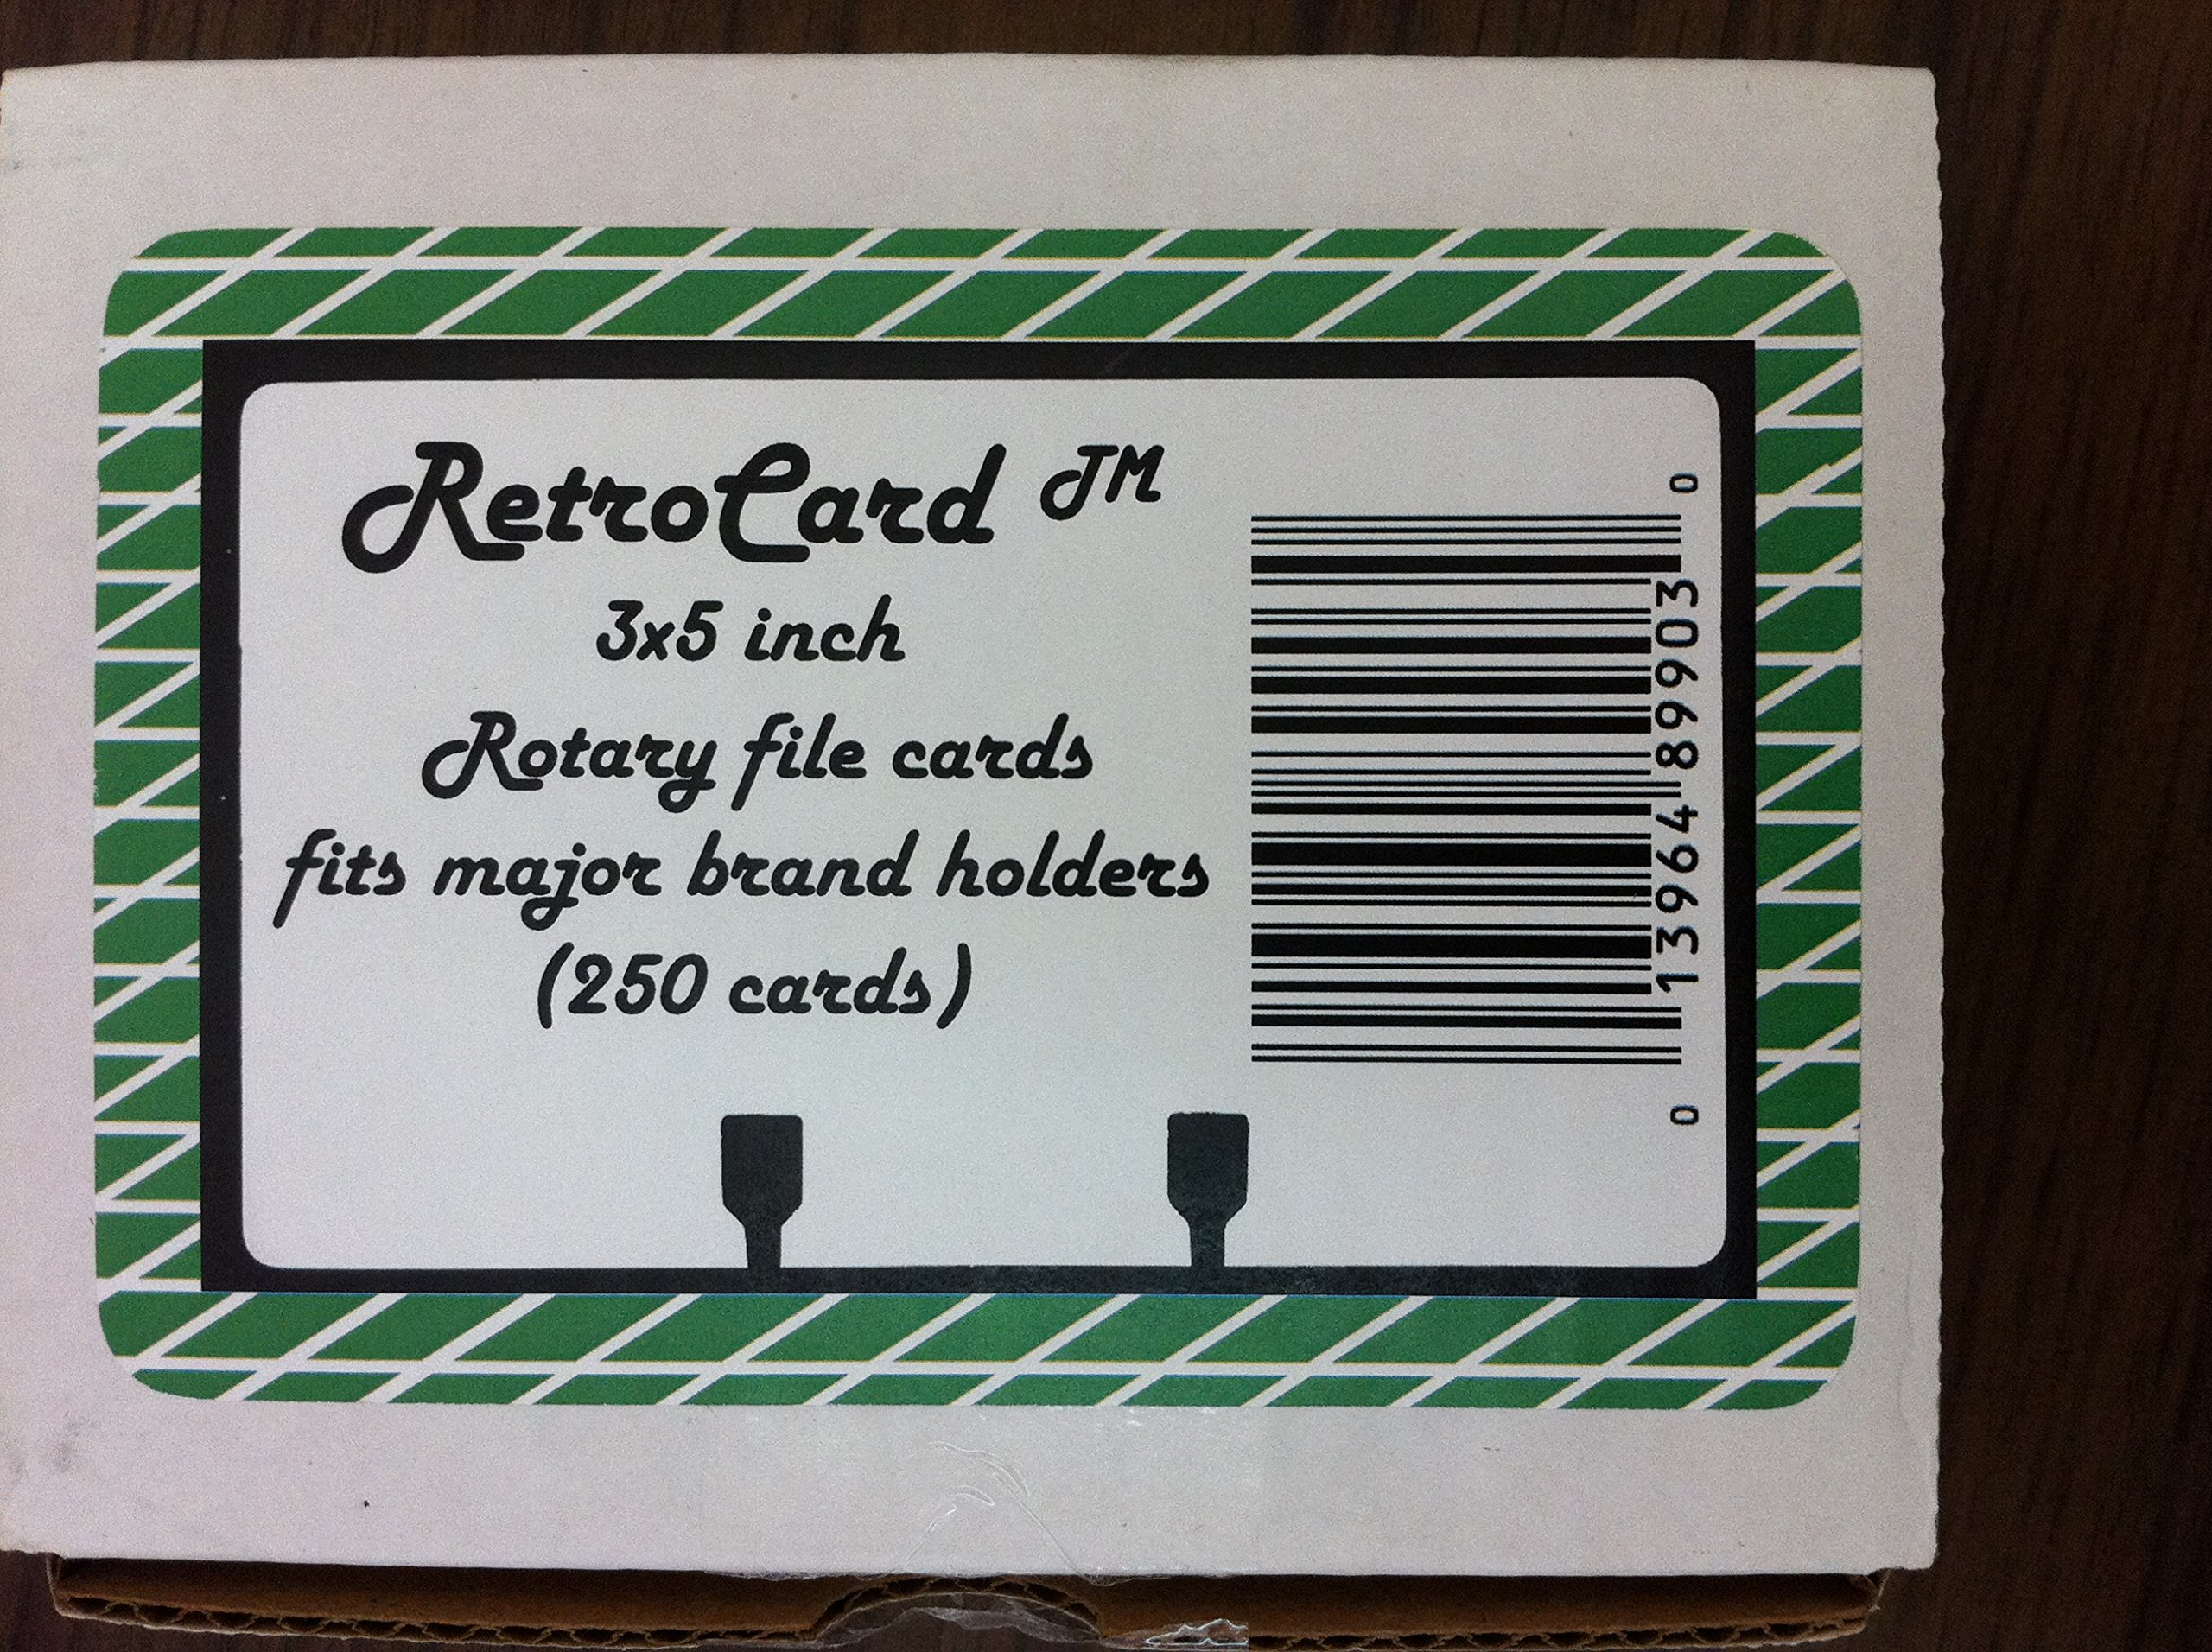 Retrocard™ 3x5 Rotary File Refill Cards (250)